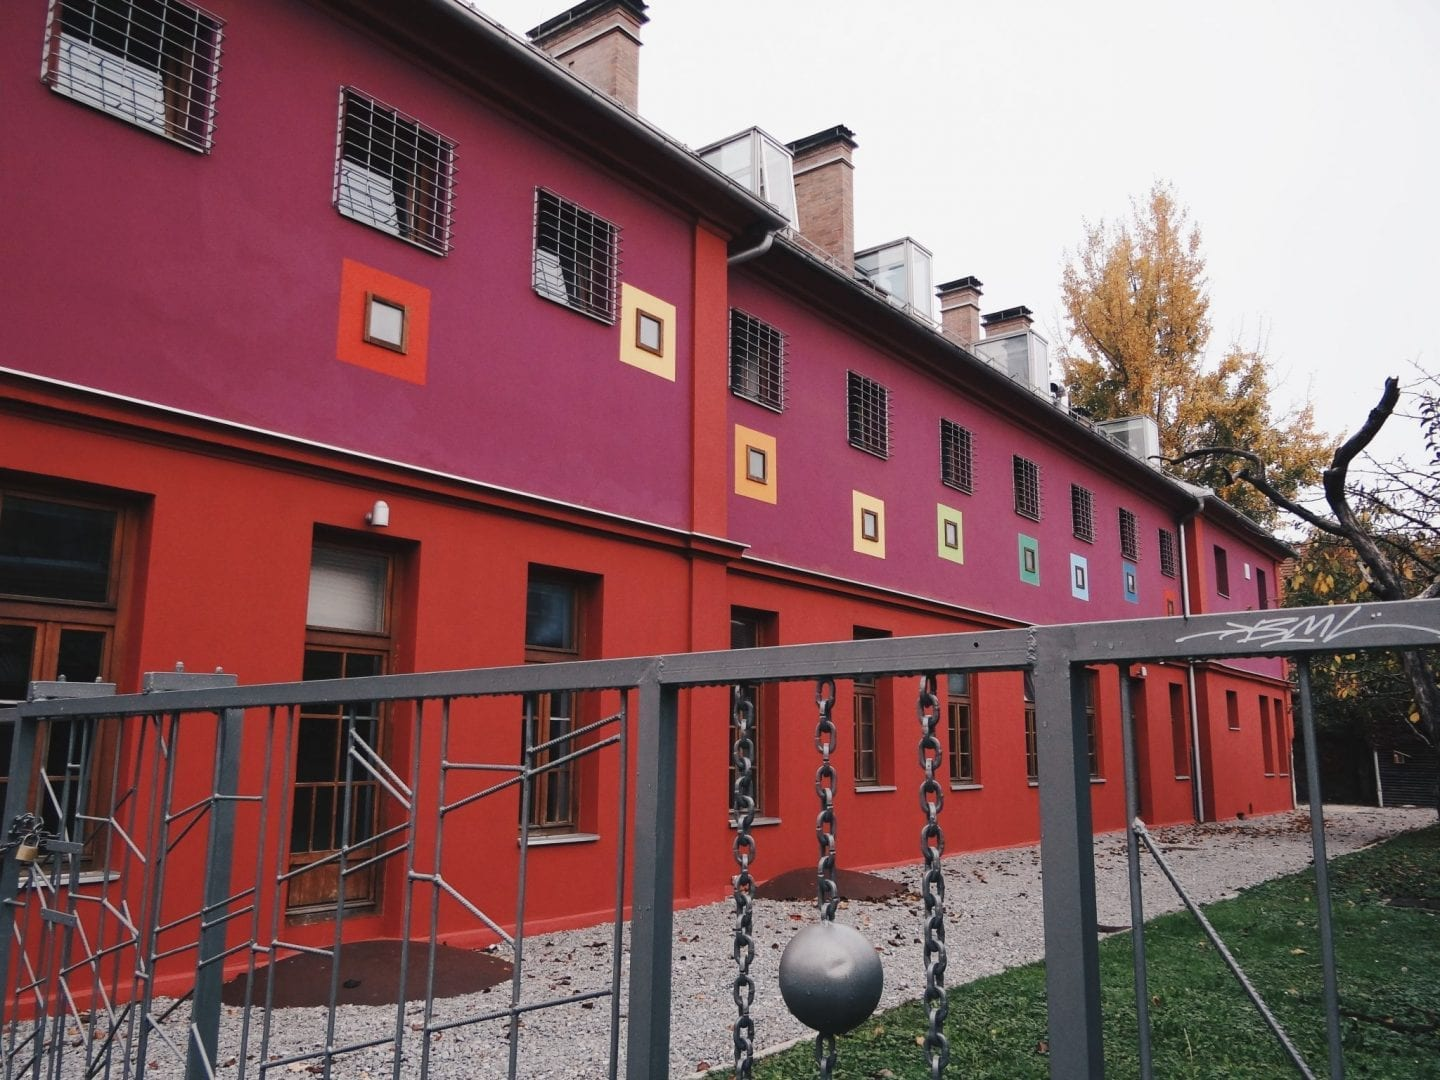 Hostel Celica, Ljubljana: My night at a former military prison